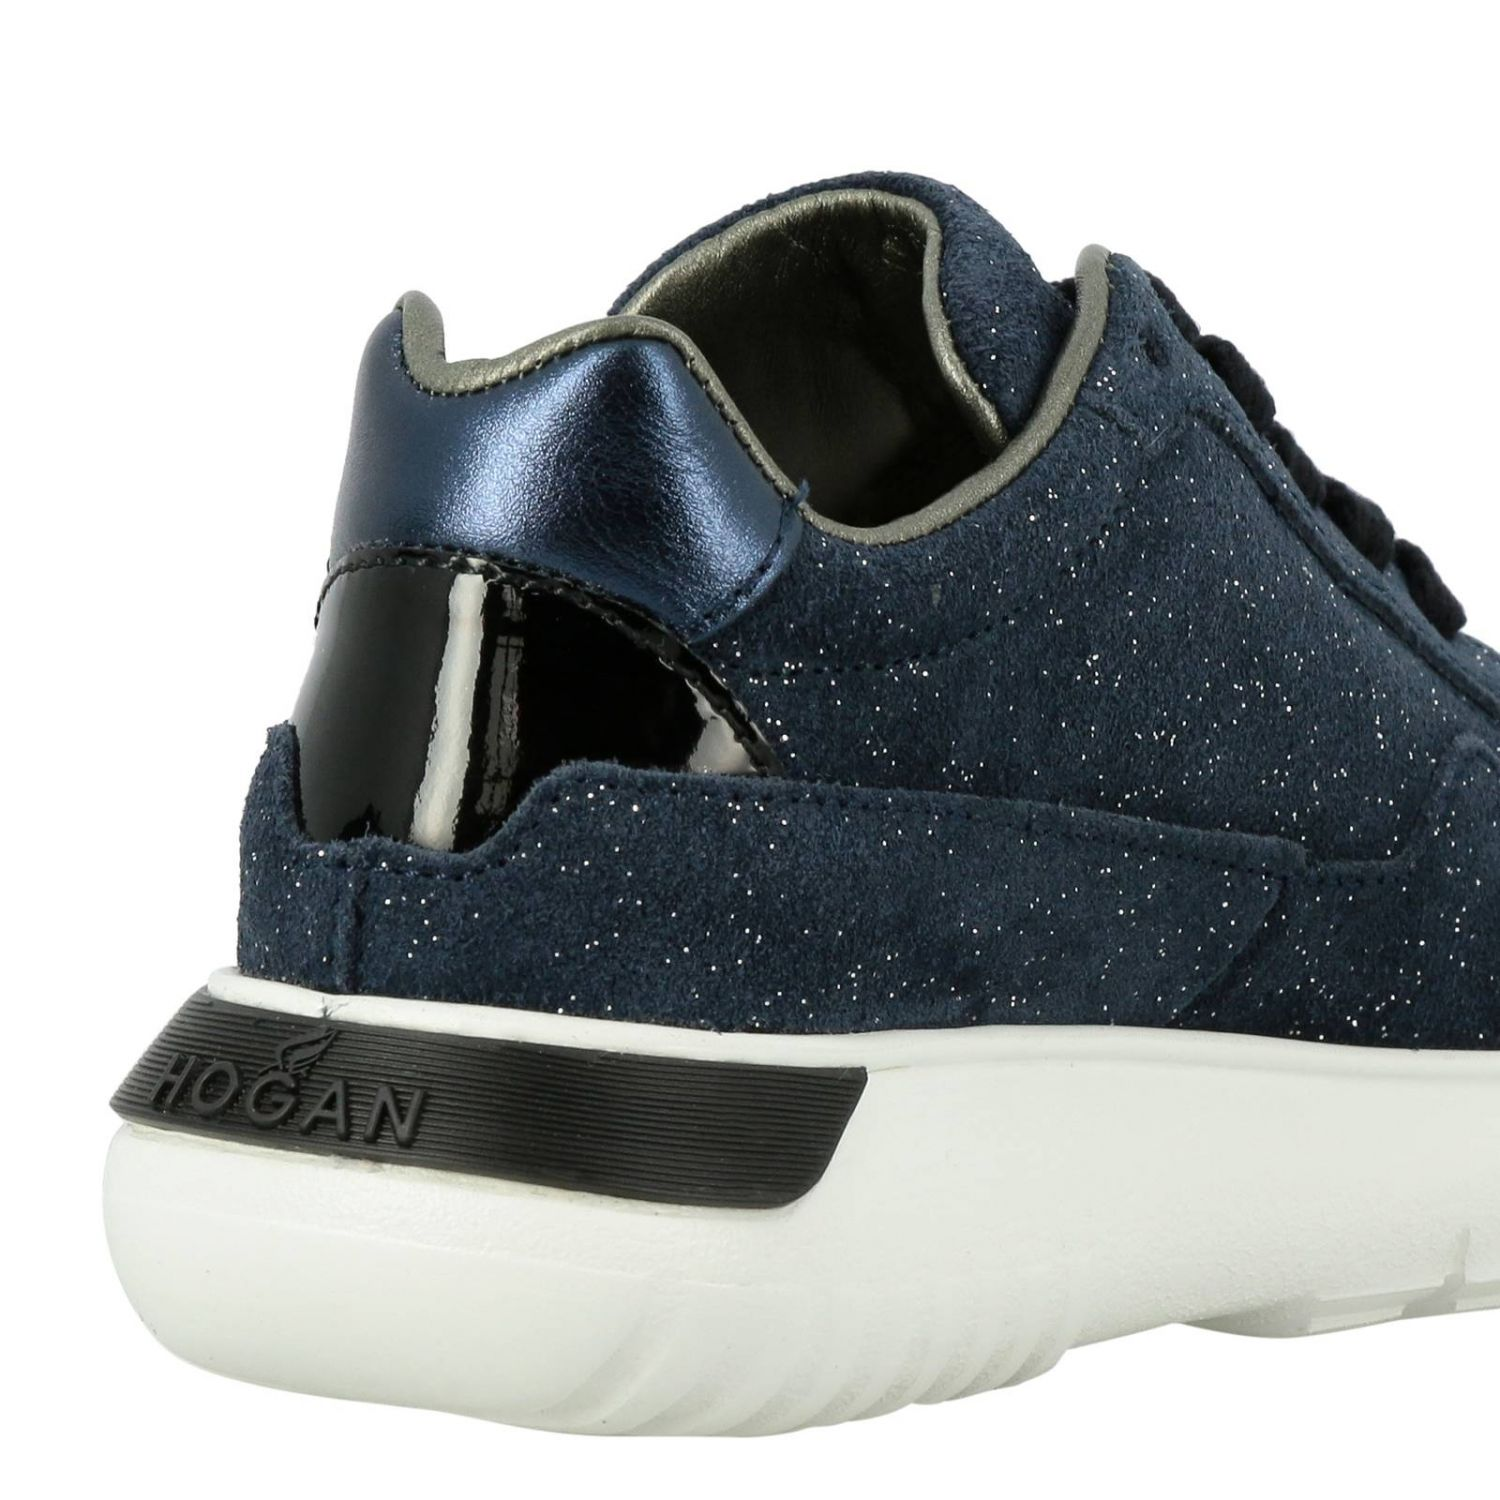 Cube Hogan glitter suede sneakers with patent leather H blue 5